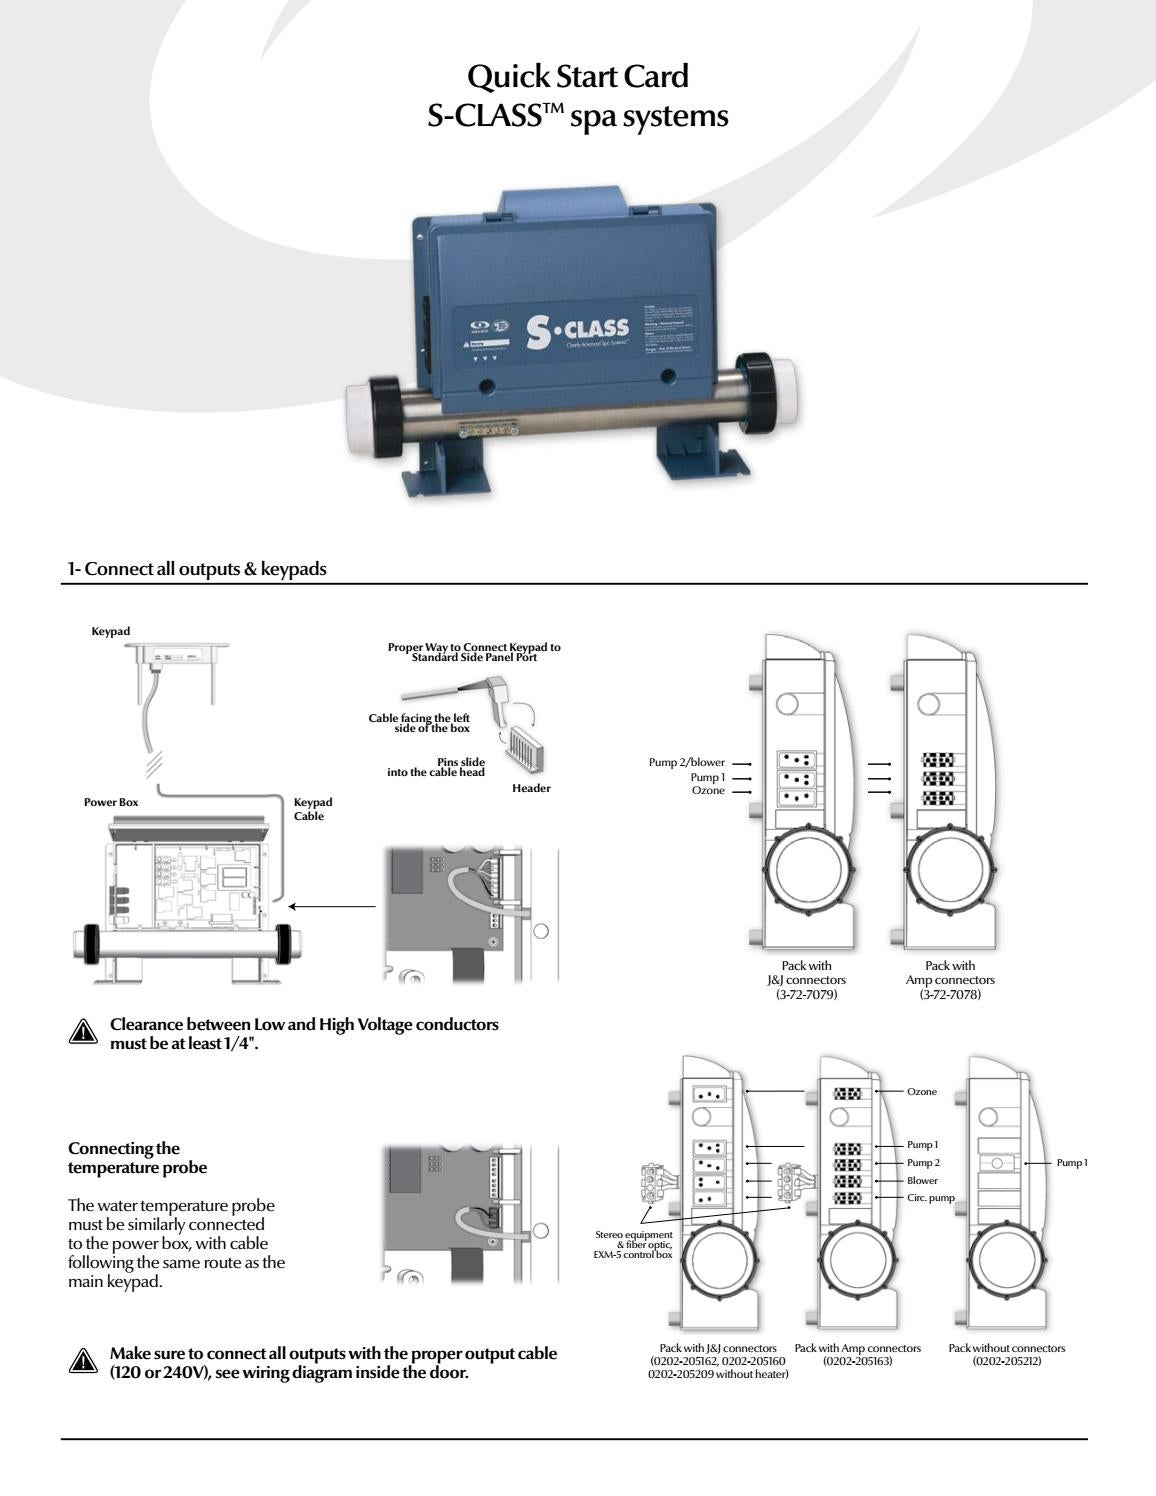 S Class Control System Quick Start Card By Gecko Marketing Issuu High Voltage Wiring Diagram